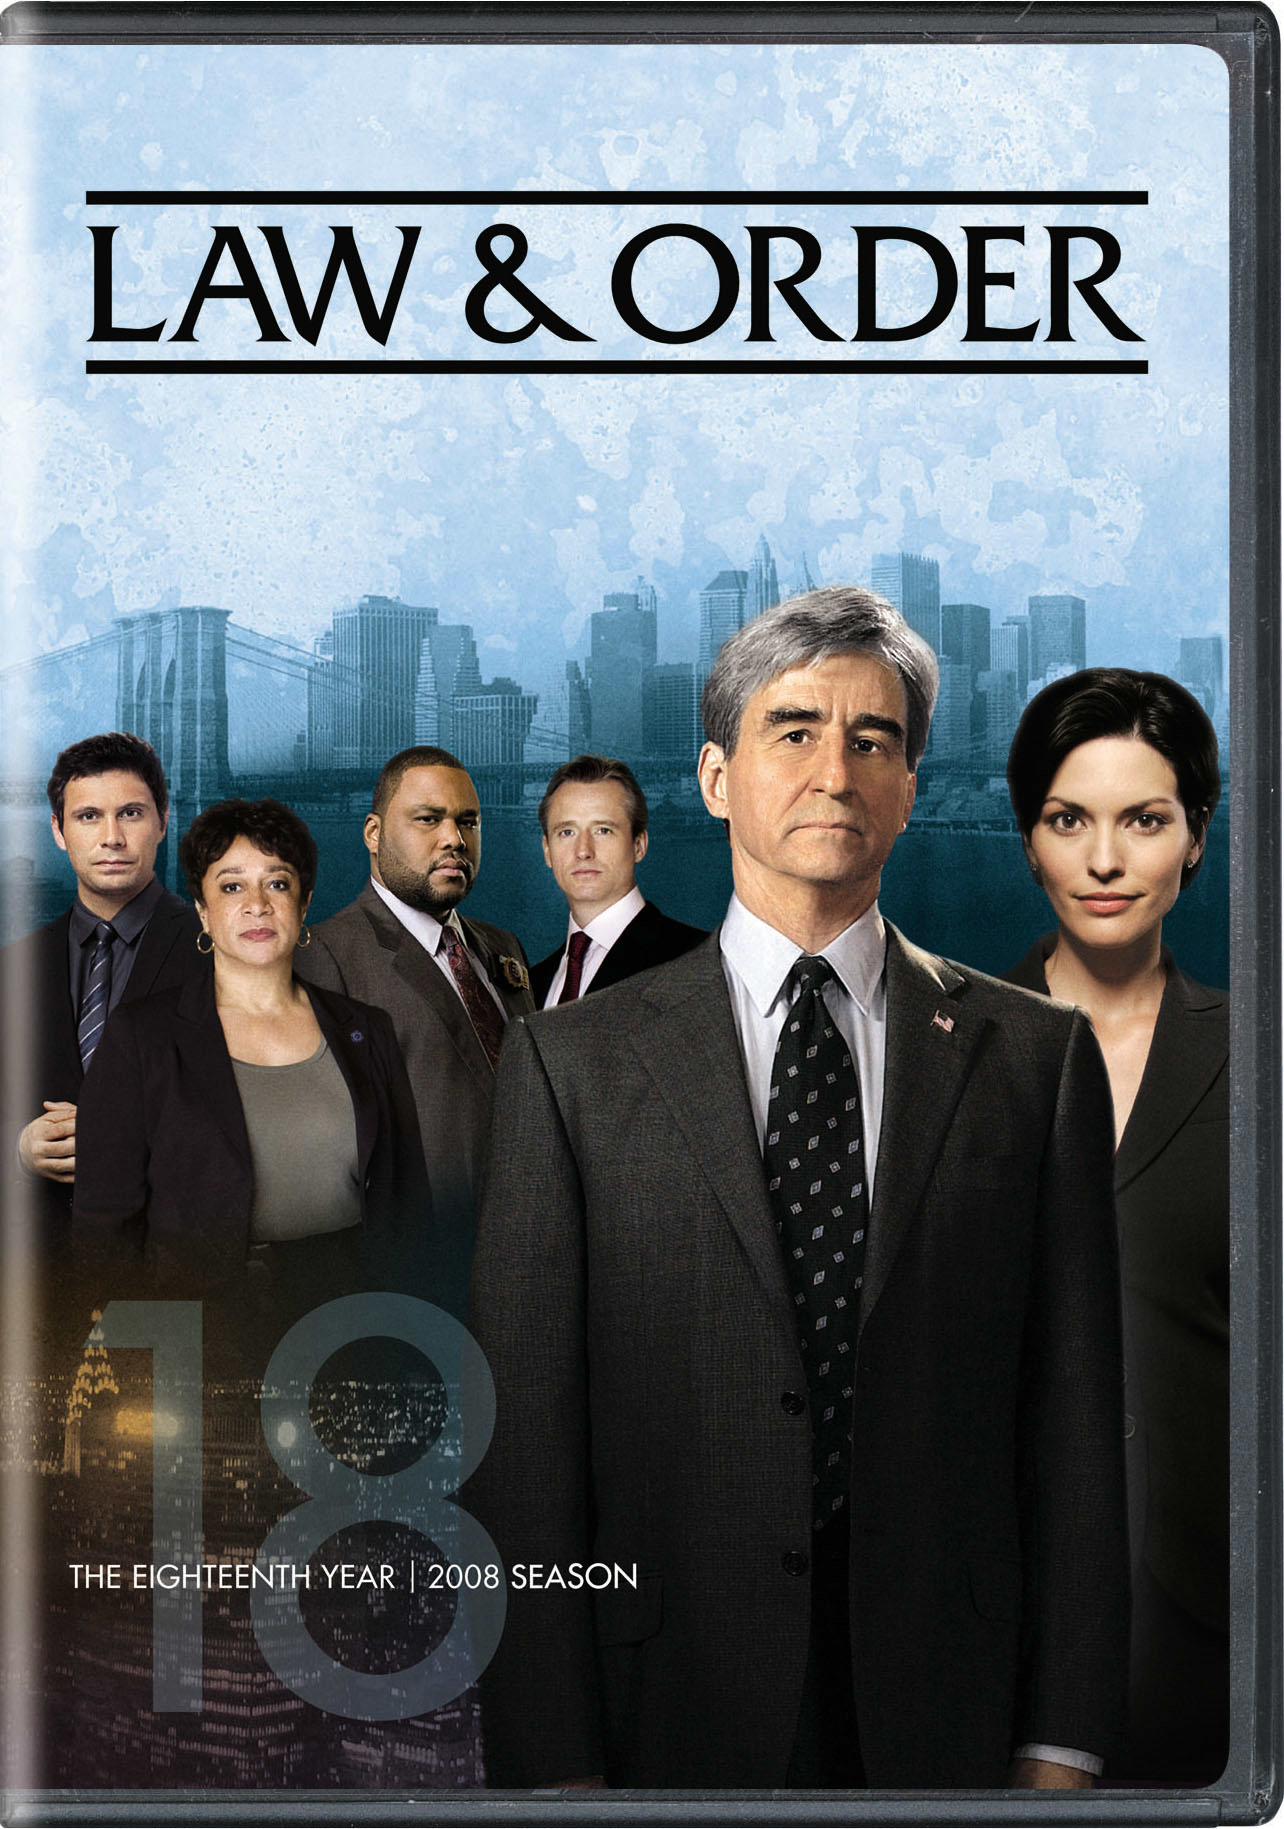 Law & Order: The Eighteenth Year [DVD]